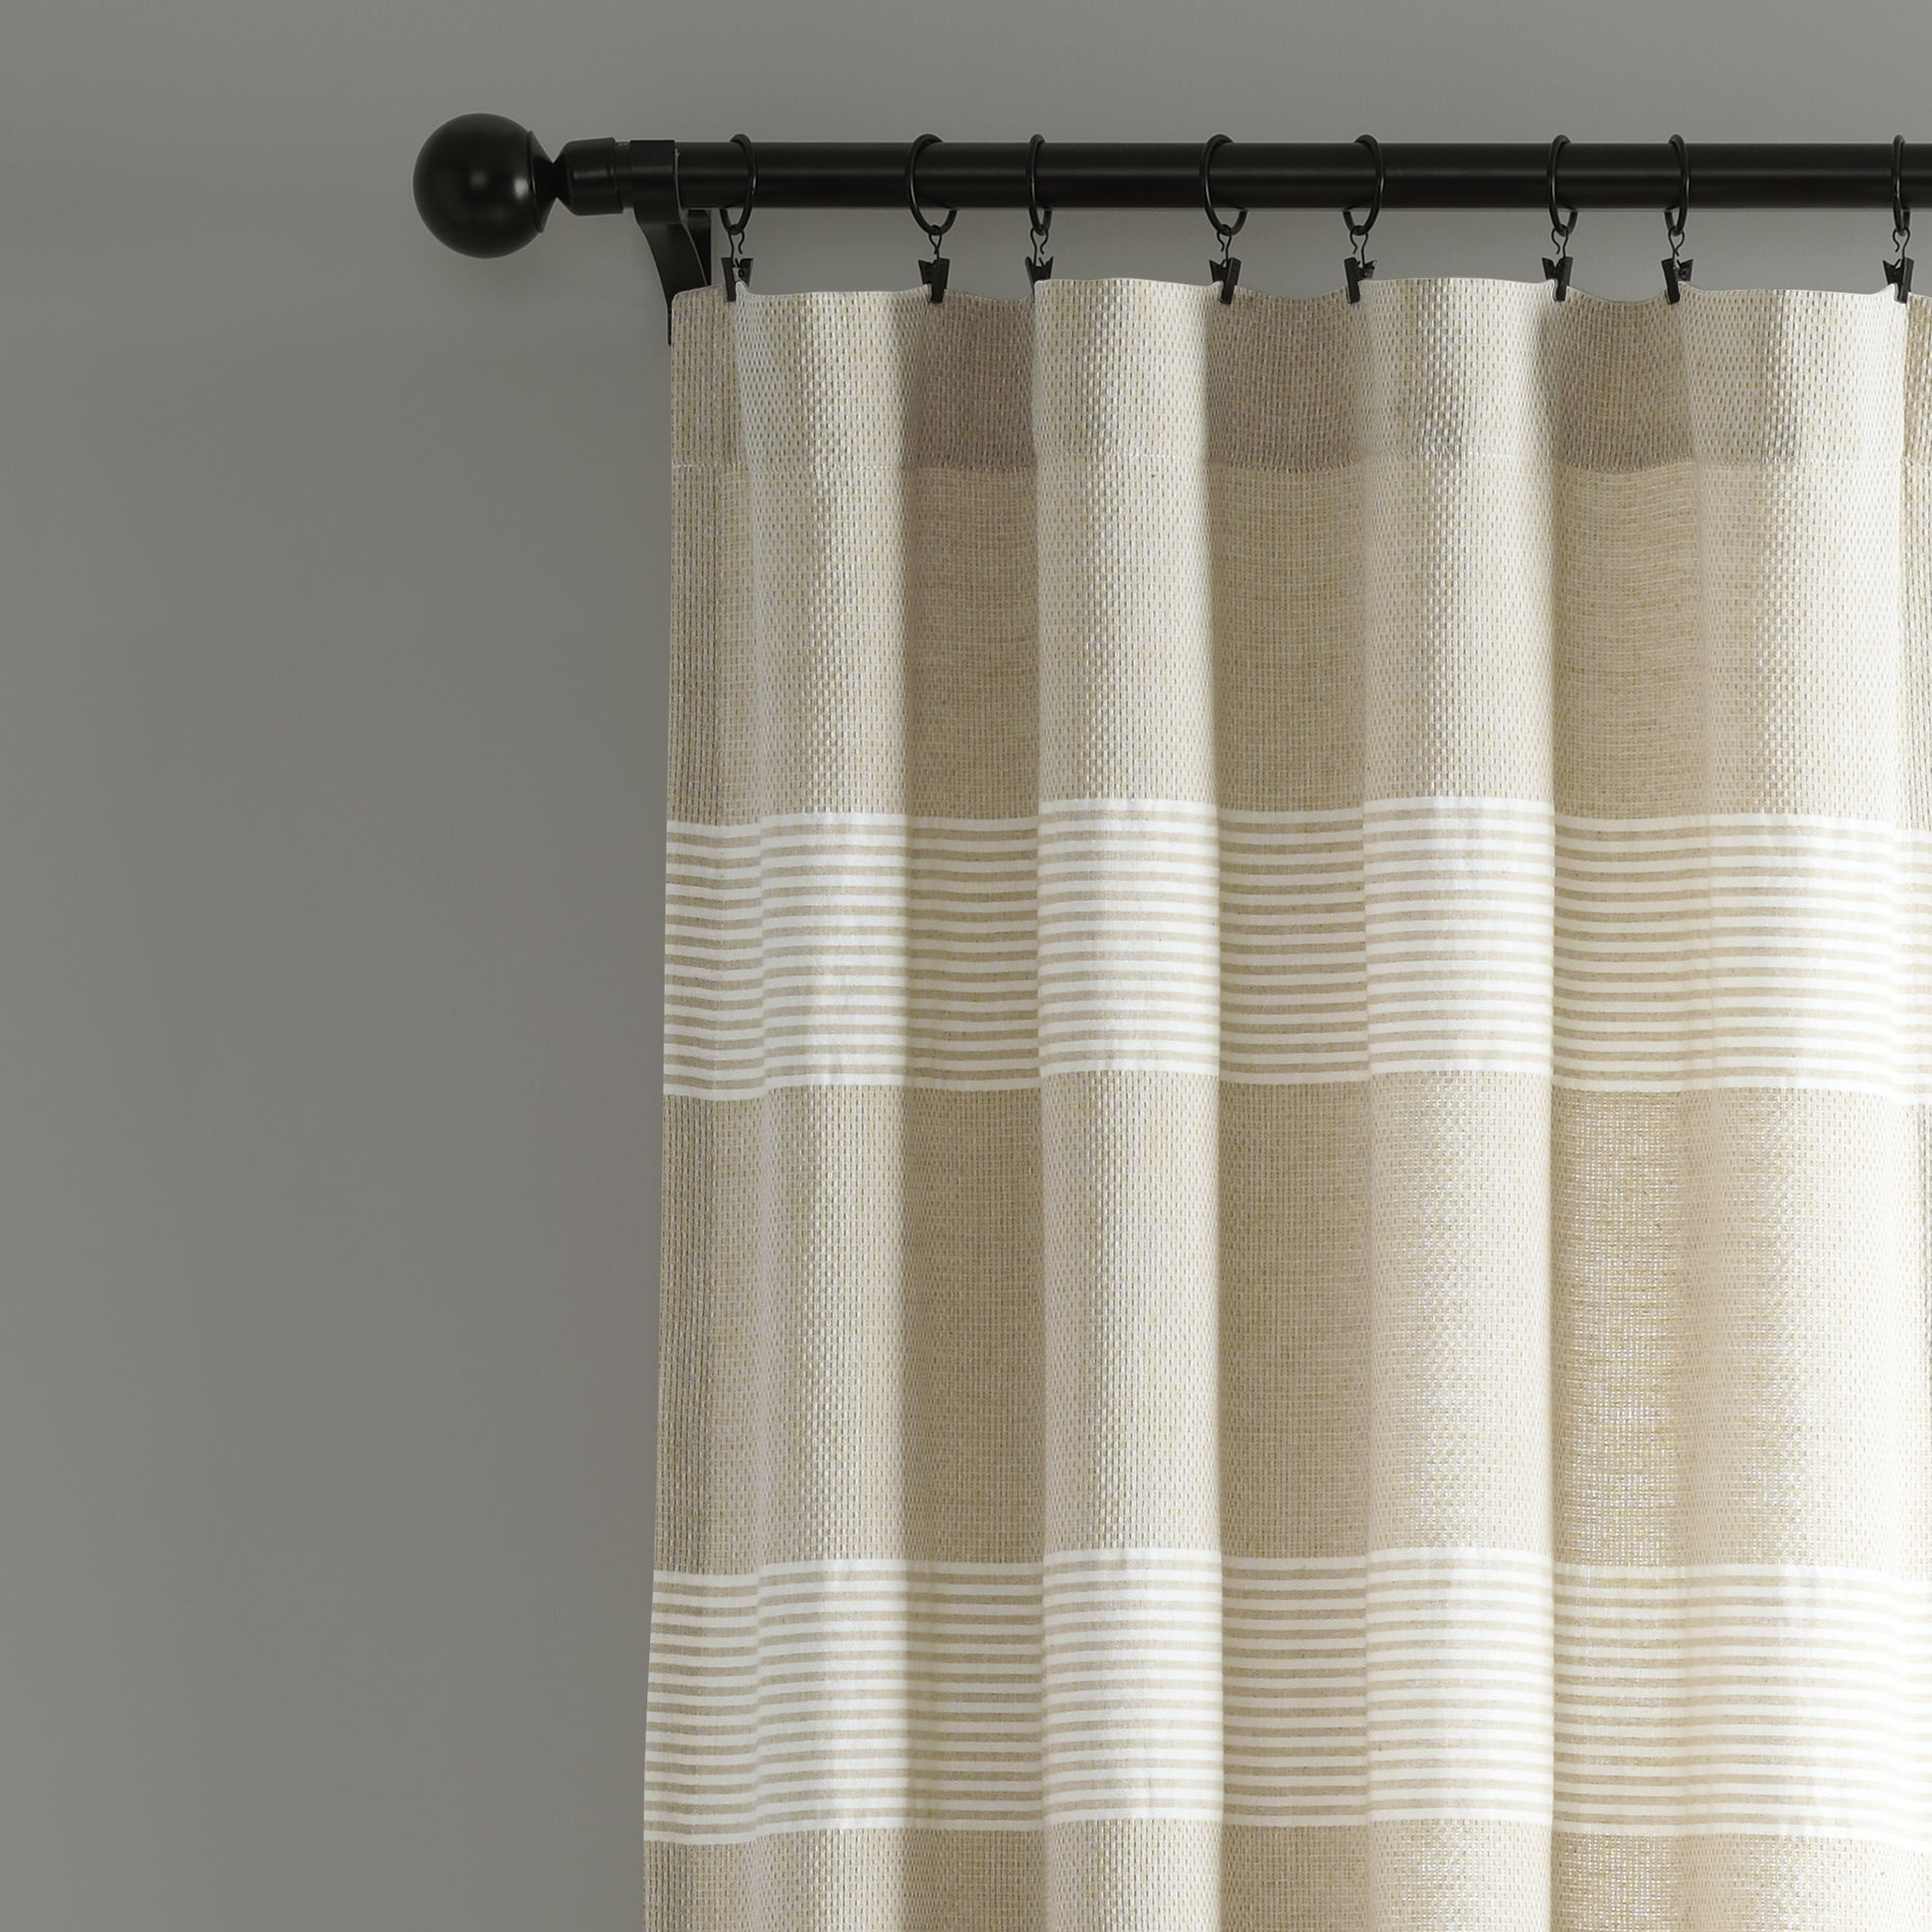 Lush Decor Tucker Stripe Yarn Dyed Cotton Knotted Tassel Window Curtain Panel Pair Inside Ombre Stripe Yarn Dyed Cotton Window Curtain Panel Pairs (View 4 of 20)